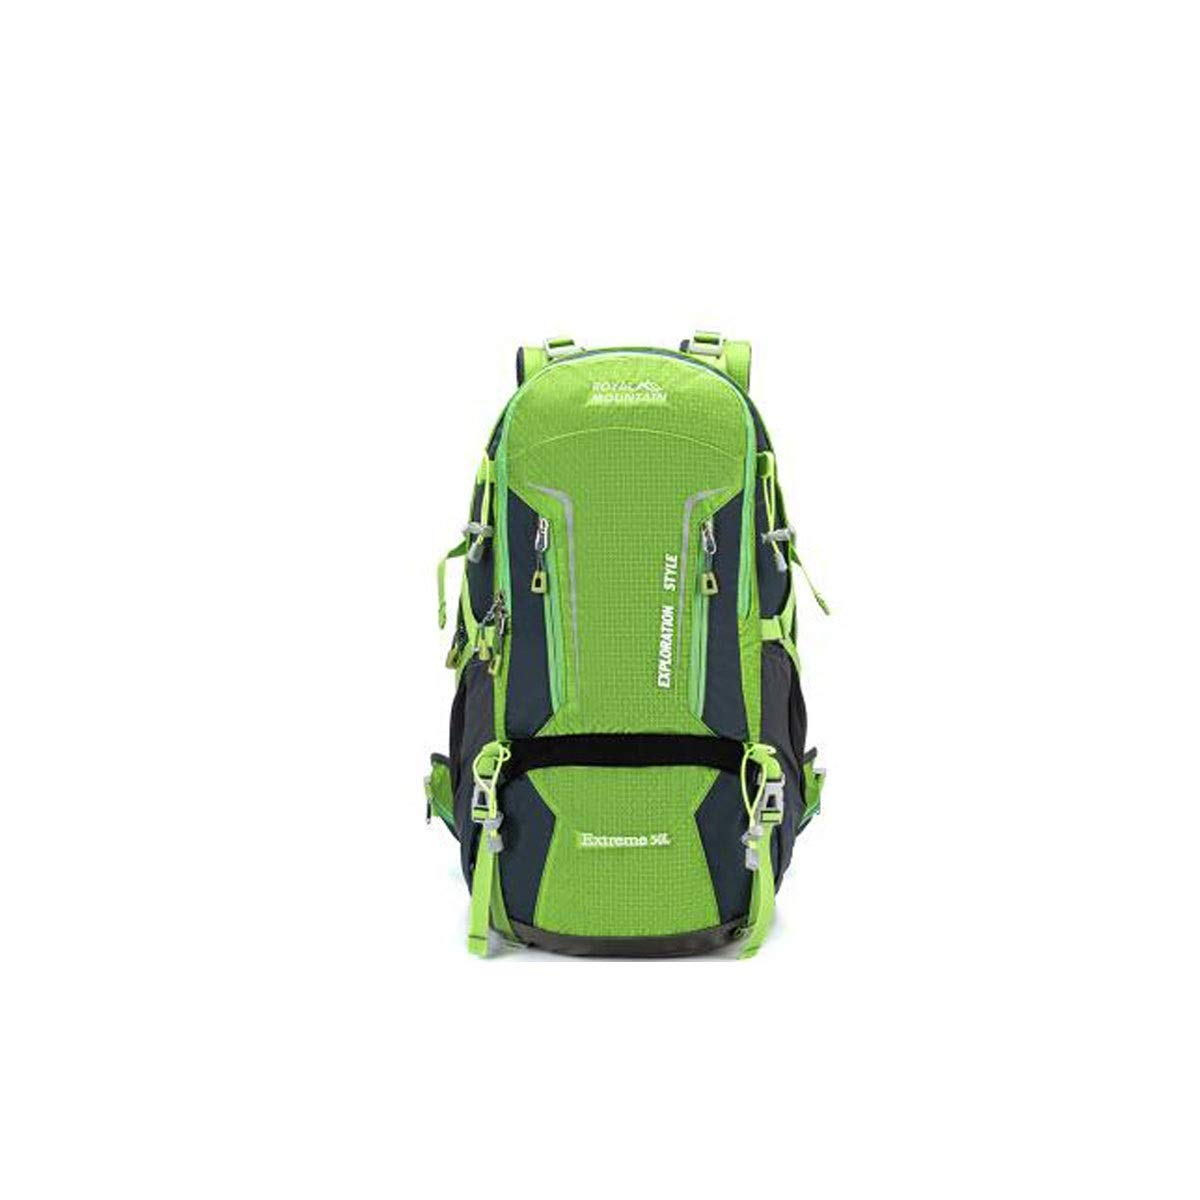 Chenjinxiang01 50L Large Capacity Outdoor Mountaineering Bag Color : Pink Camping Travel Multi-Purpose Camping Backpack